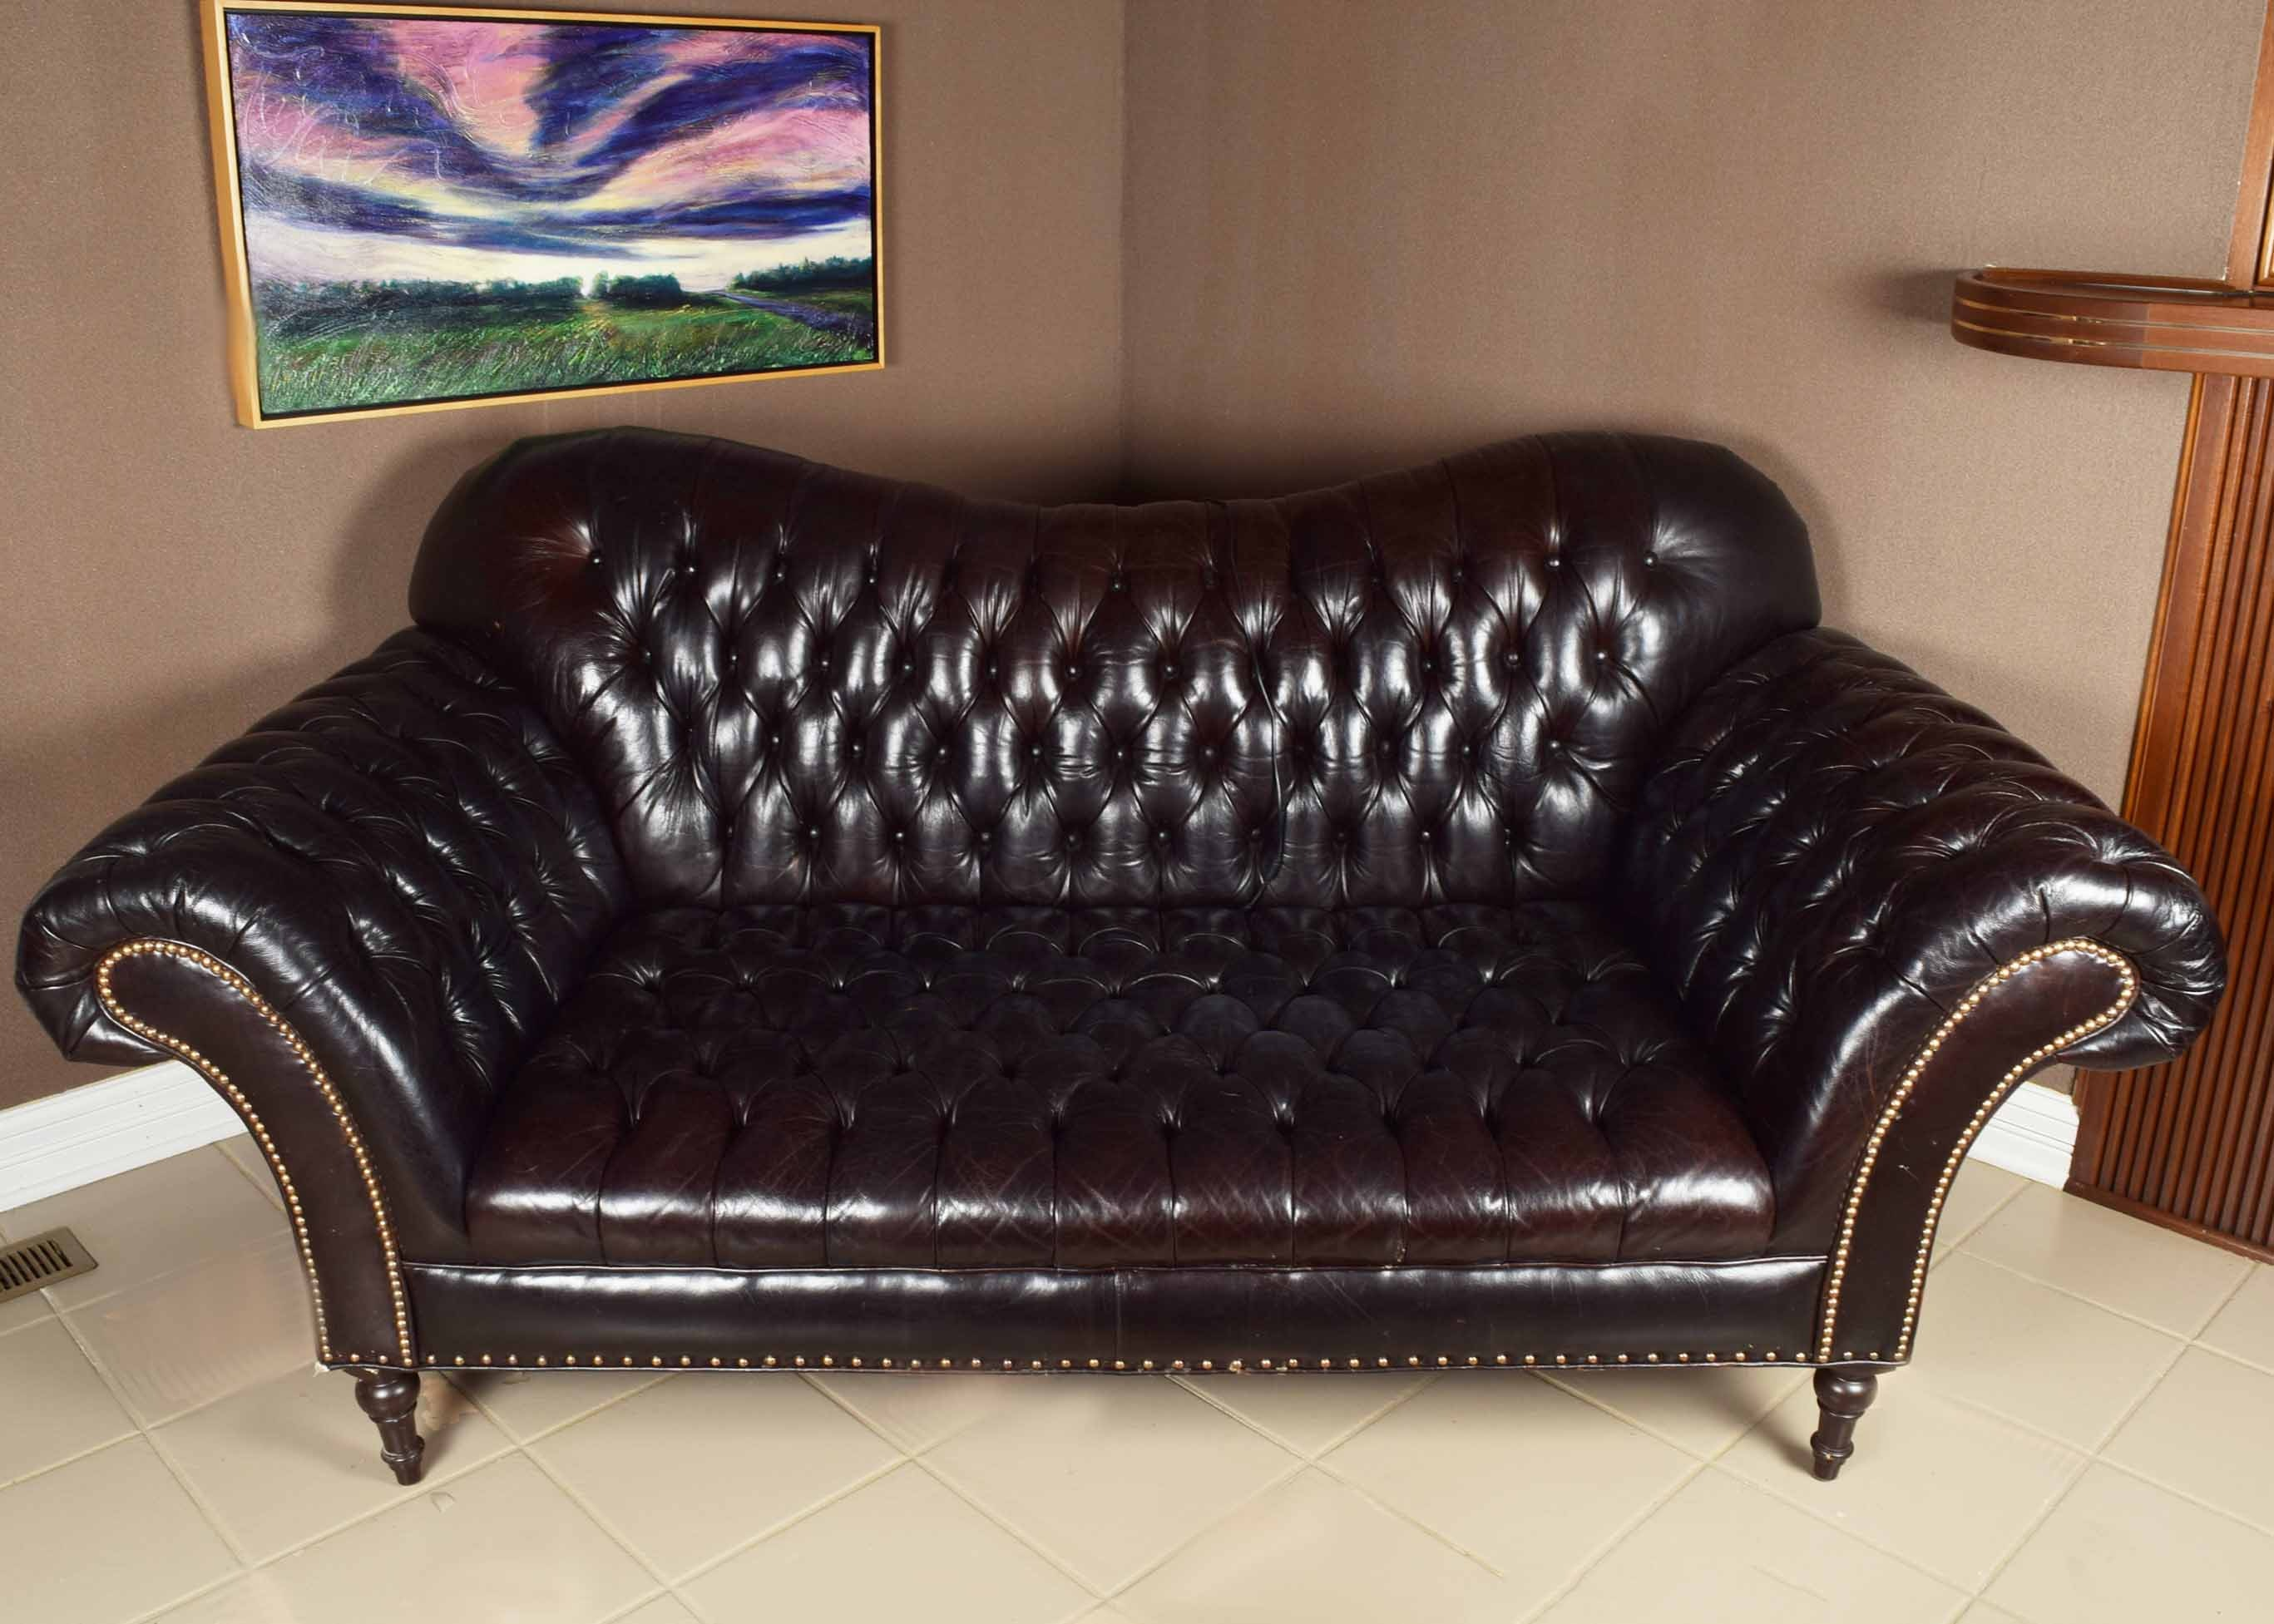 Arhaus Club Petit Chesterfield Style Tufted Leather Sofa .